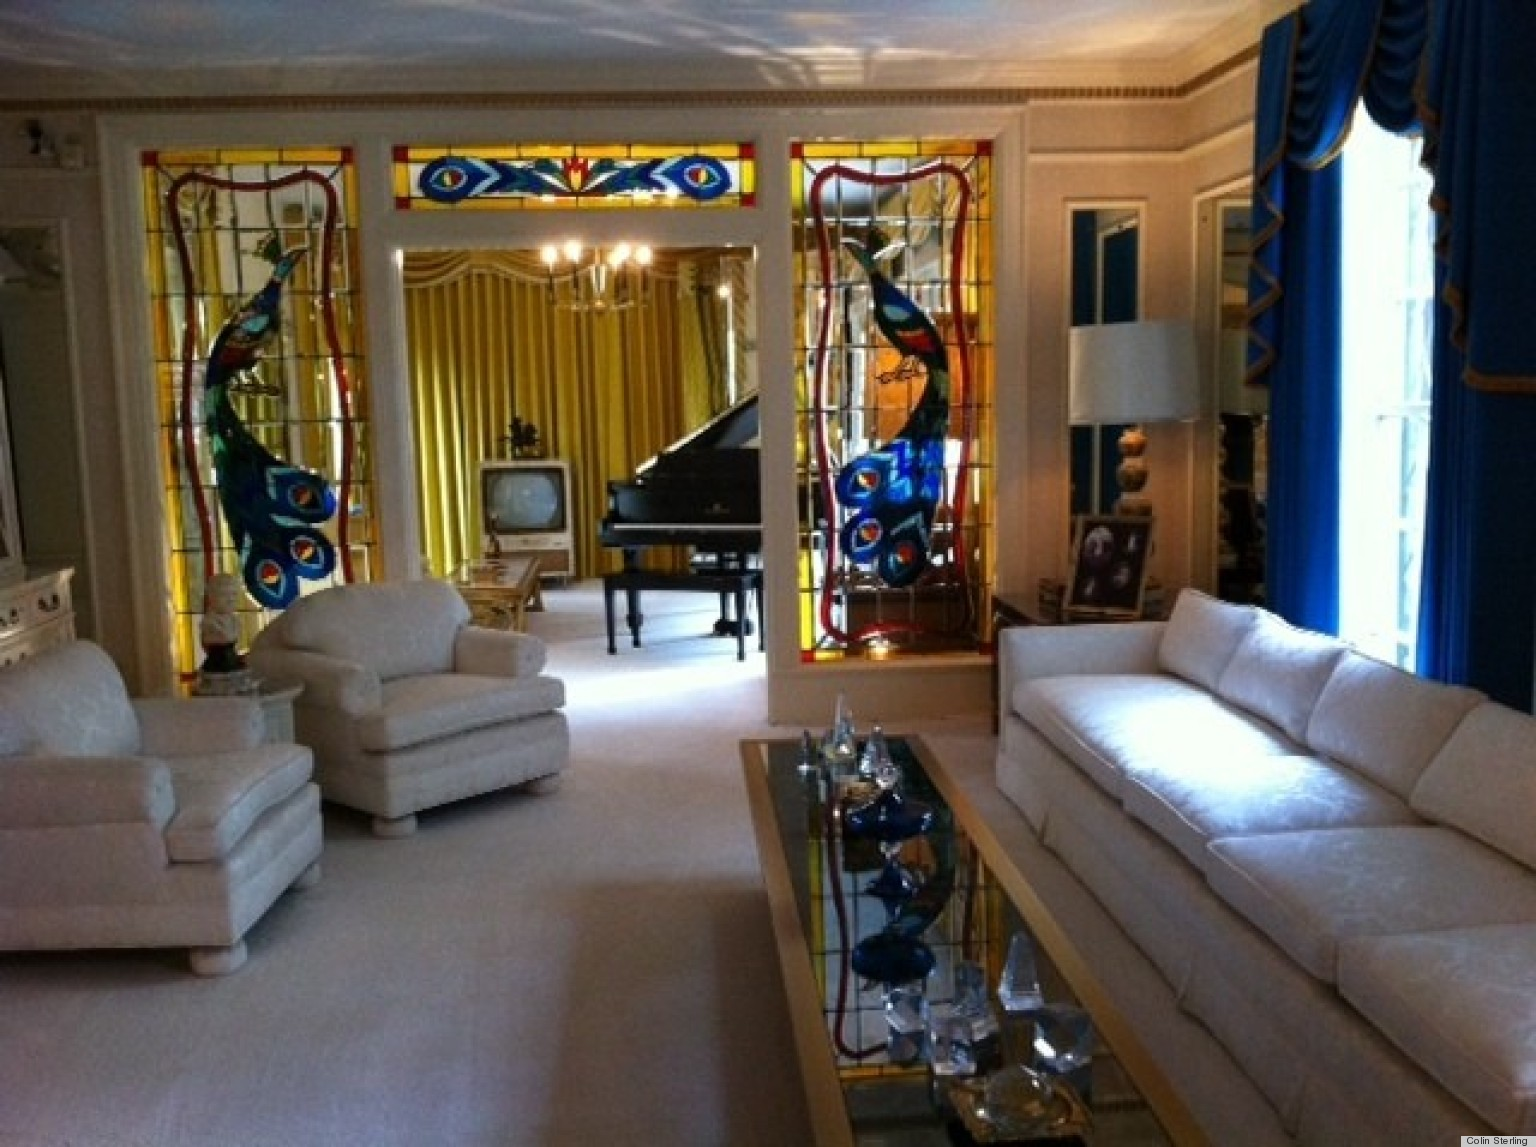 Celebrate elvis presley 39 s birthday by taking a look inside for House inside images